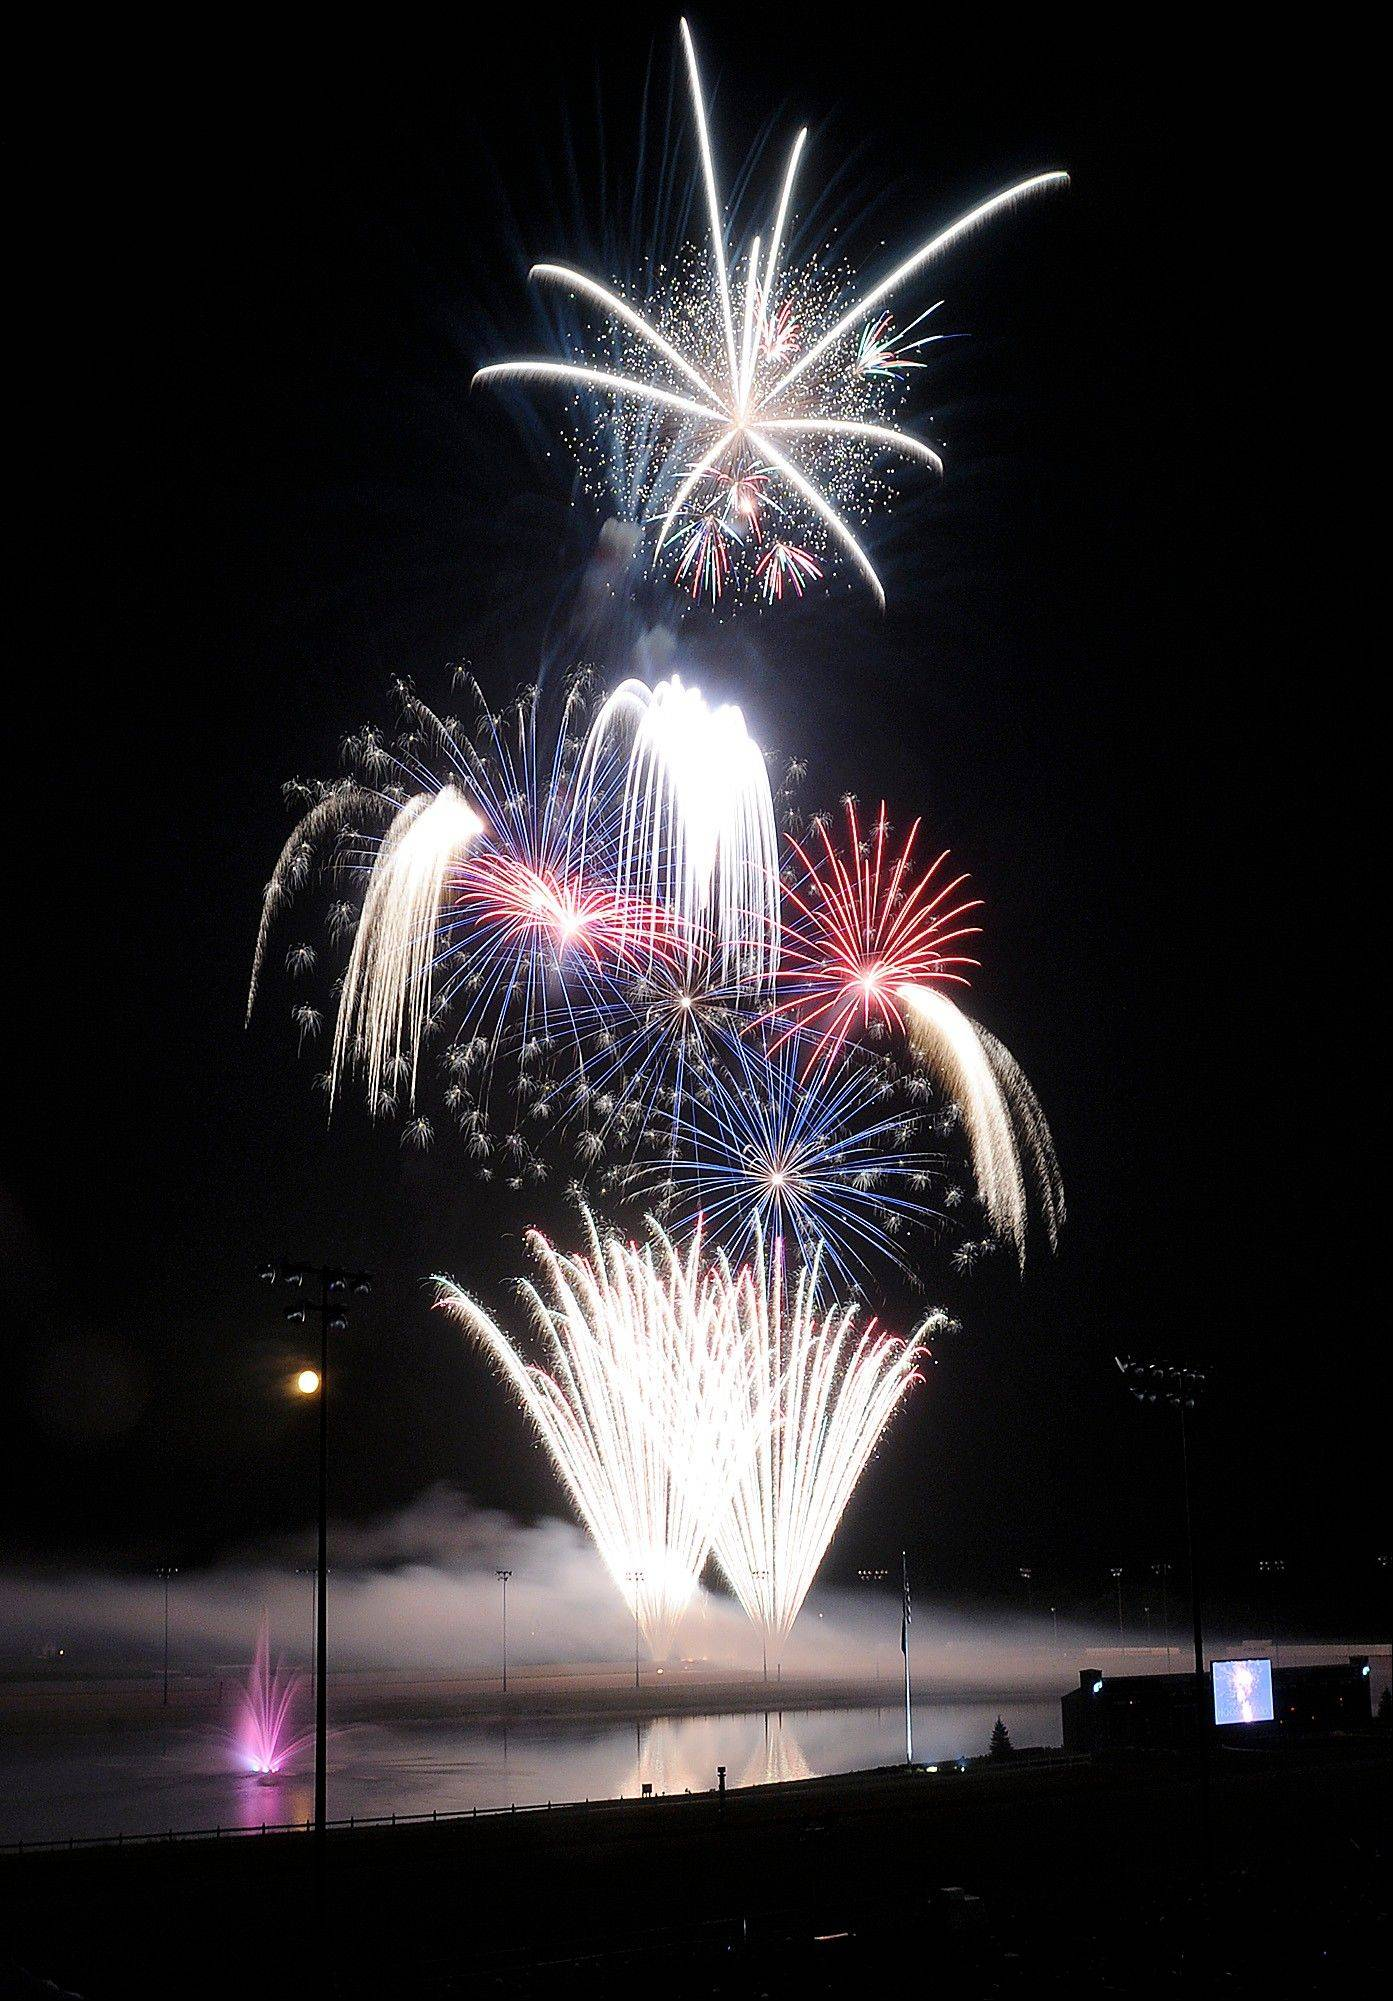 Fireworks fill the sky after a performance by the Anderson Symphony Orchestra at Hoosier Park Racing & Casino in Anderson, Ind. on Wednesday, July 4, 2012.